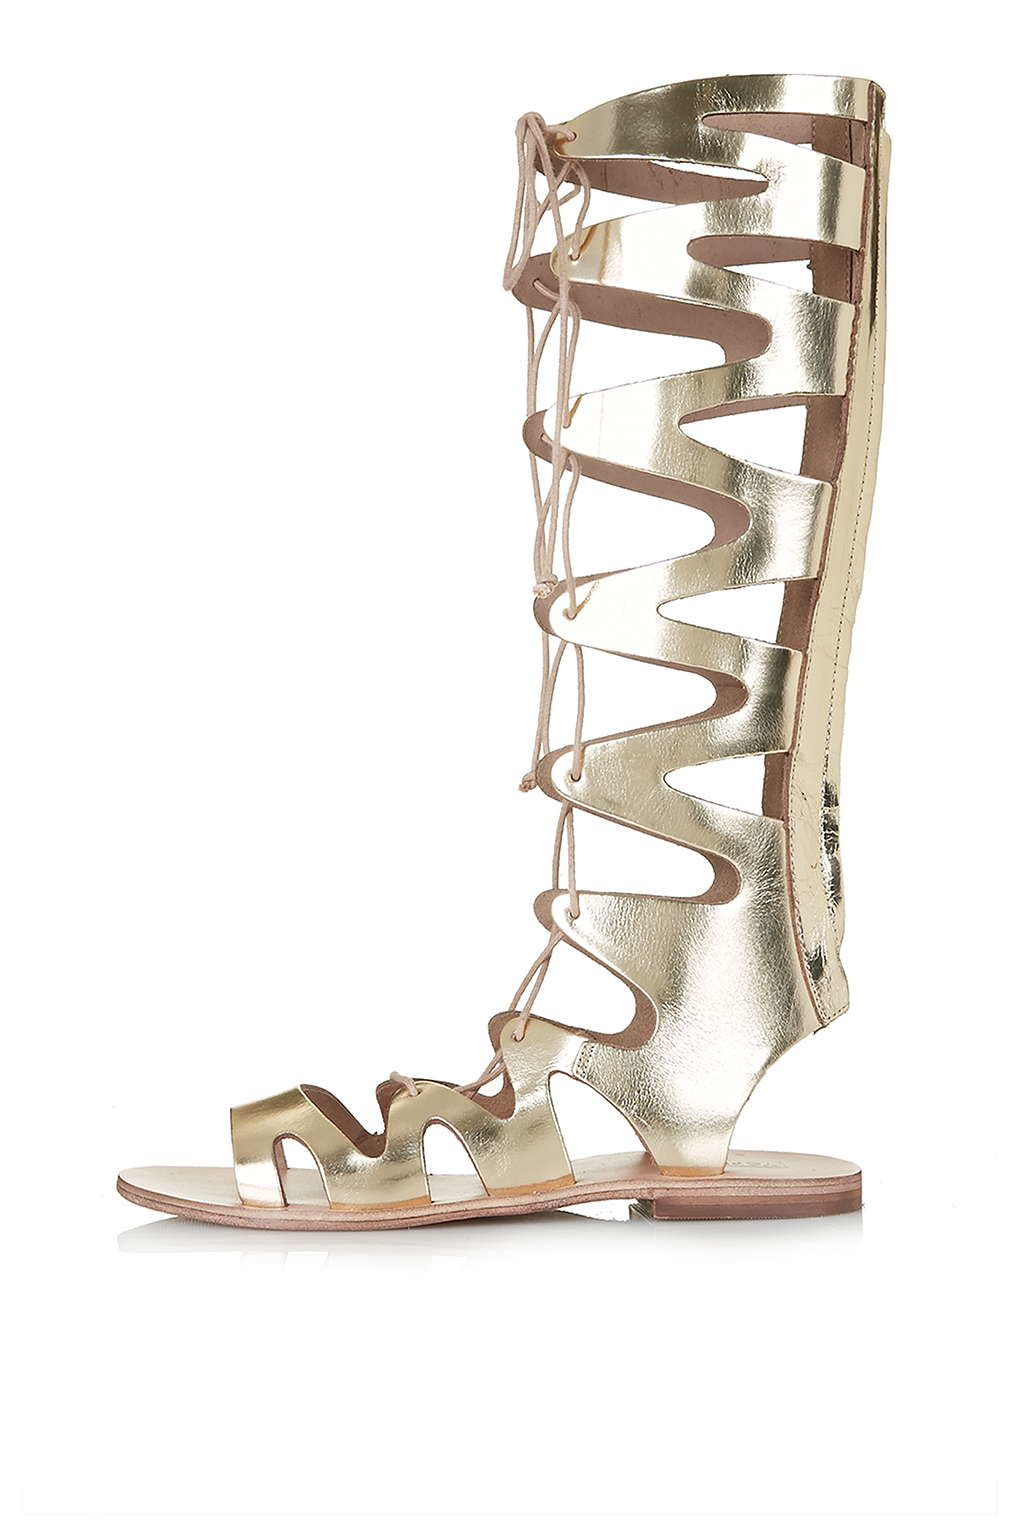 a7946e2a7c2a Topshop Figtree Gladiator Sandals in Metallic - Lyst